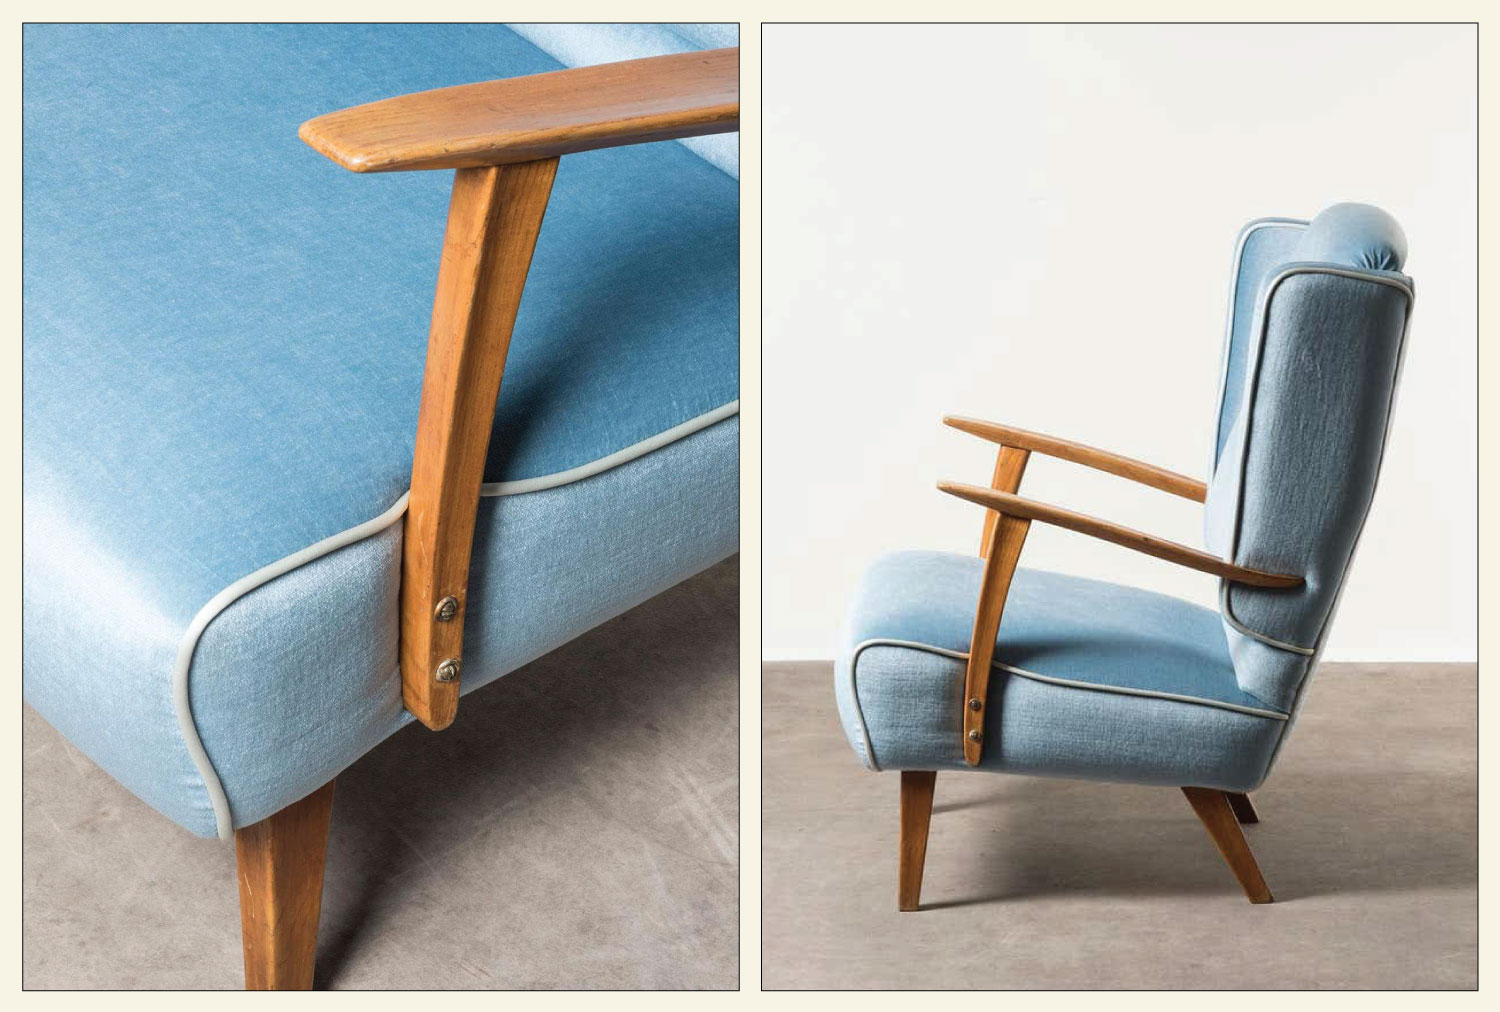 7 how to reupholster a chair